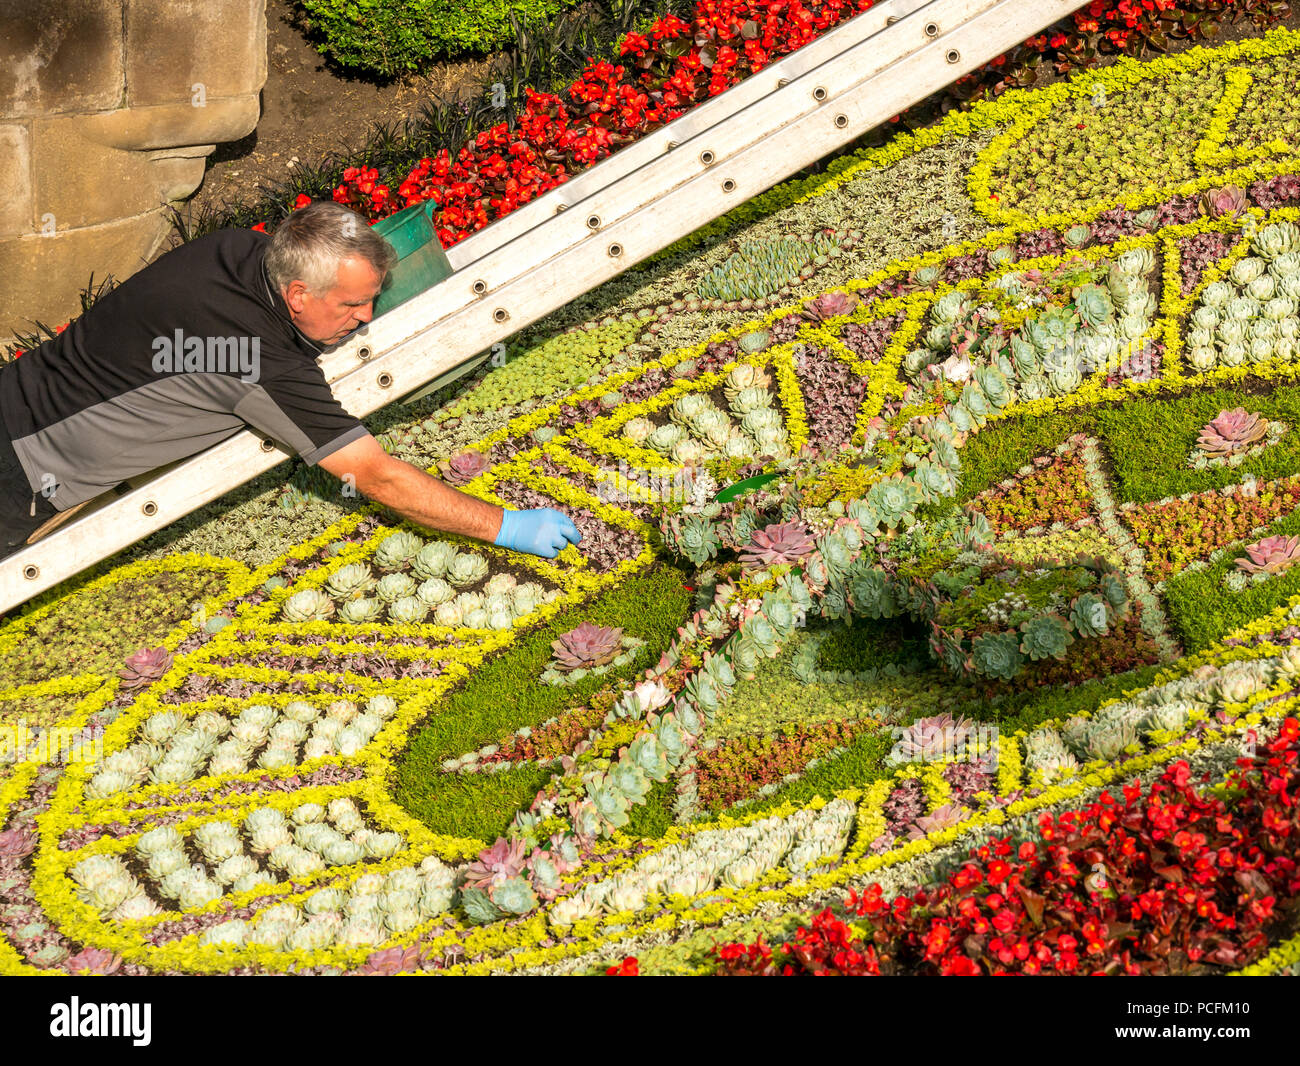 Princes Street Gardens, Edinburgh, Scotland, UK, 1st August 2018. Lovely warm morning sunshine in the city centre gardens. A gardener carefully weeds the historic floral clock. There is a different theme for the historic clock each year. It was first created in 1903 by the Edinburgh Parks Superintendent, John McHattie, and is the oldest floral clock in the world. This year it has been designed with poppies to mark 100 years since the signing of the Armistice, leading to the end of the First World War. Credit: Sally Anderson/Alamy Live News Stock Photo